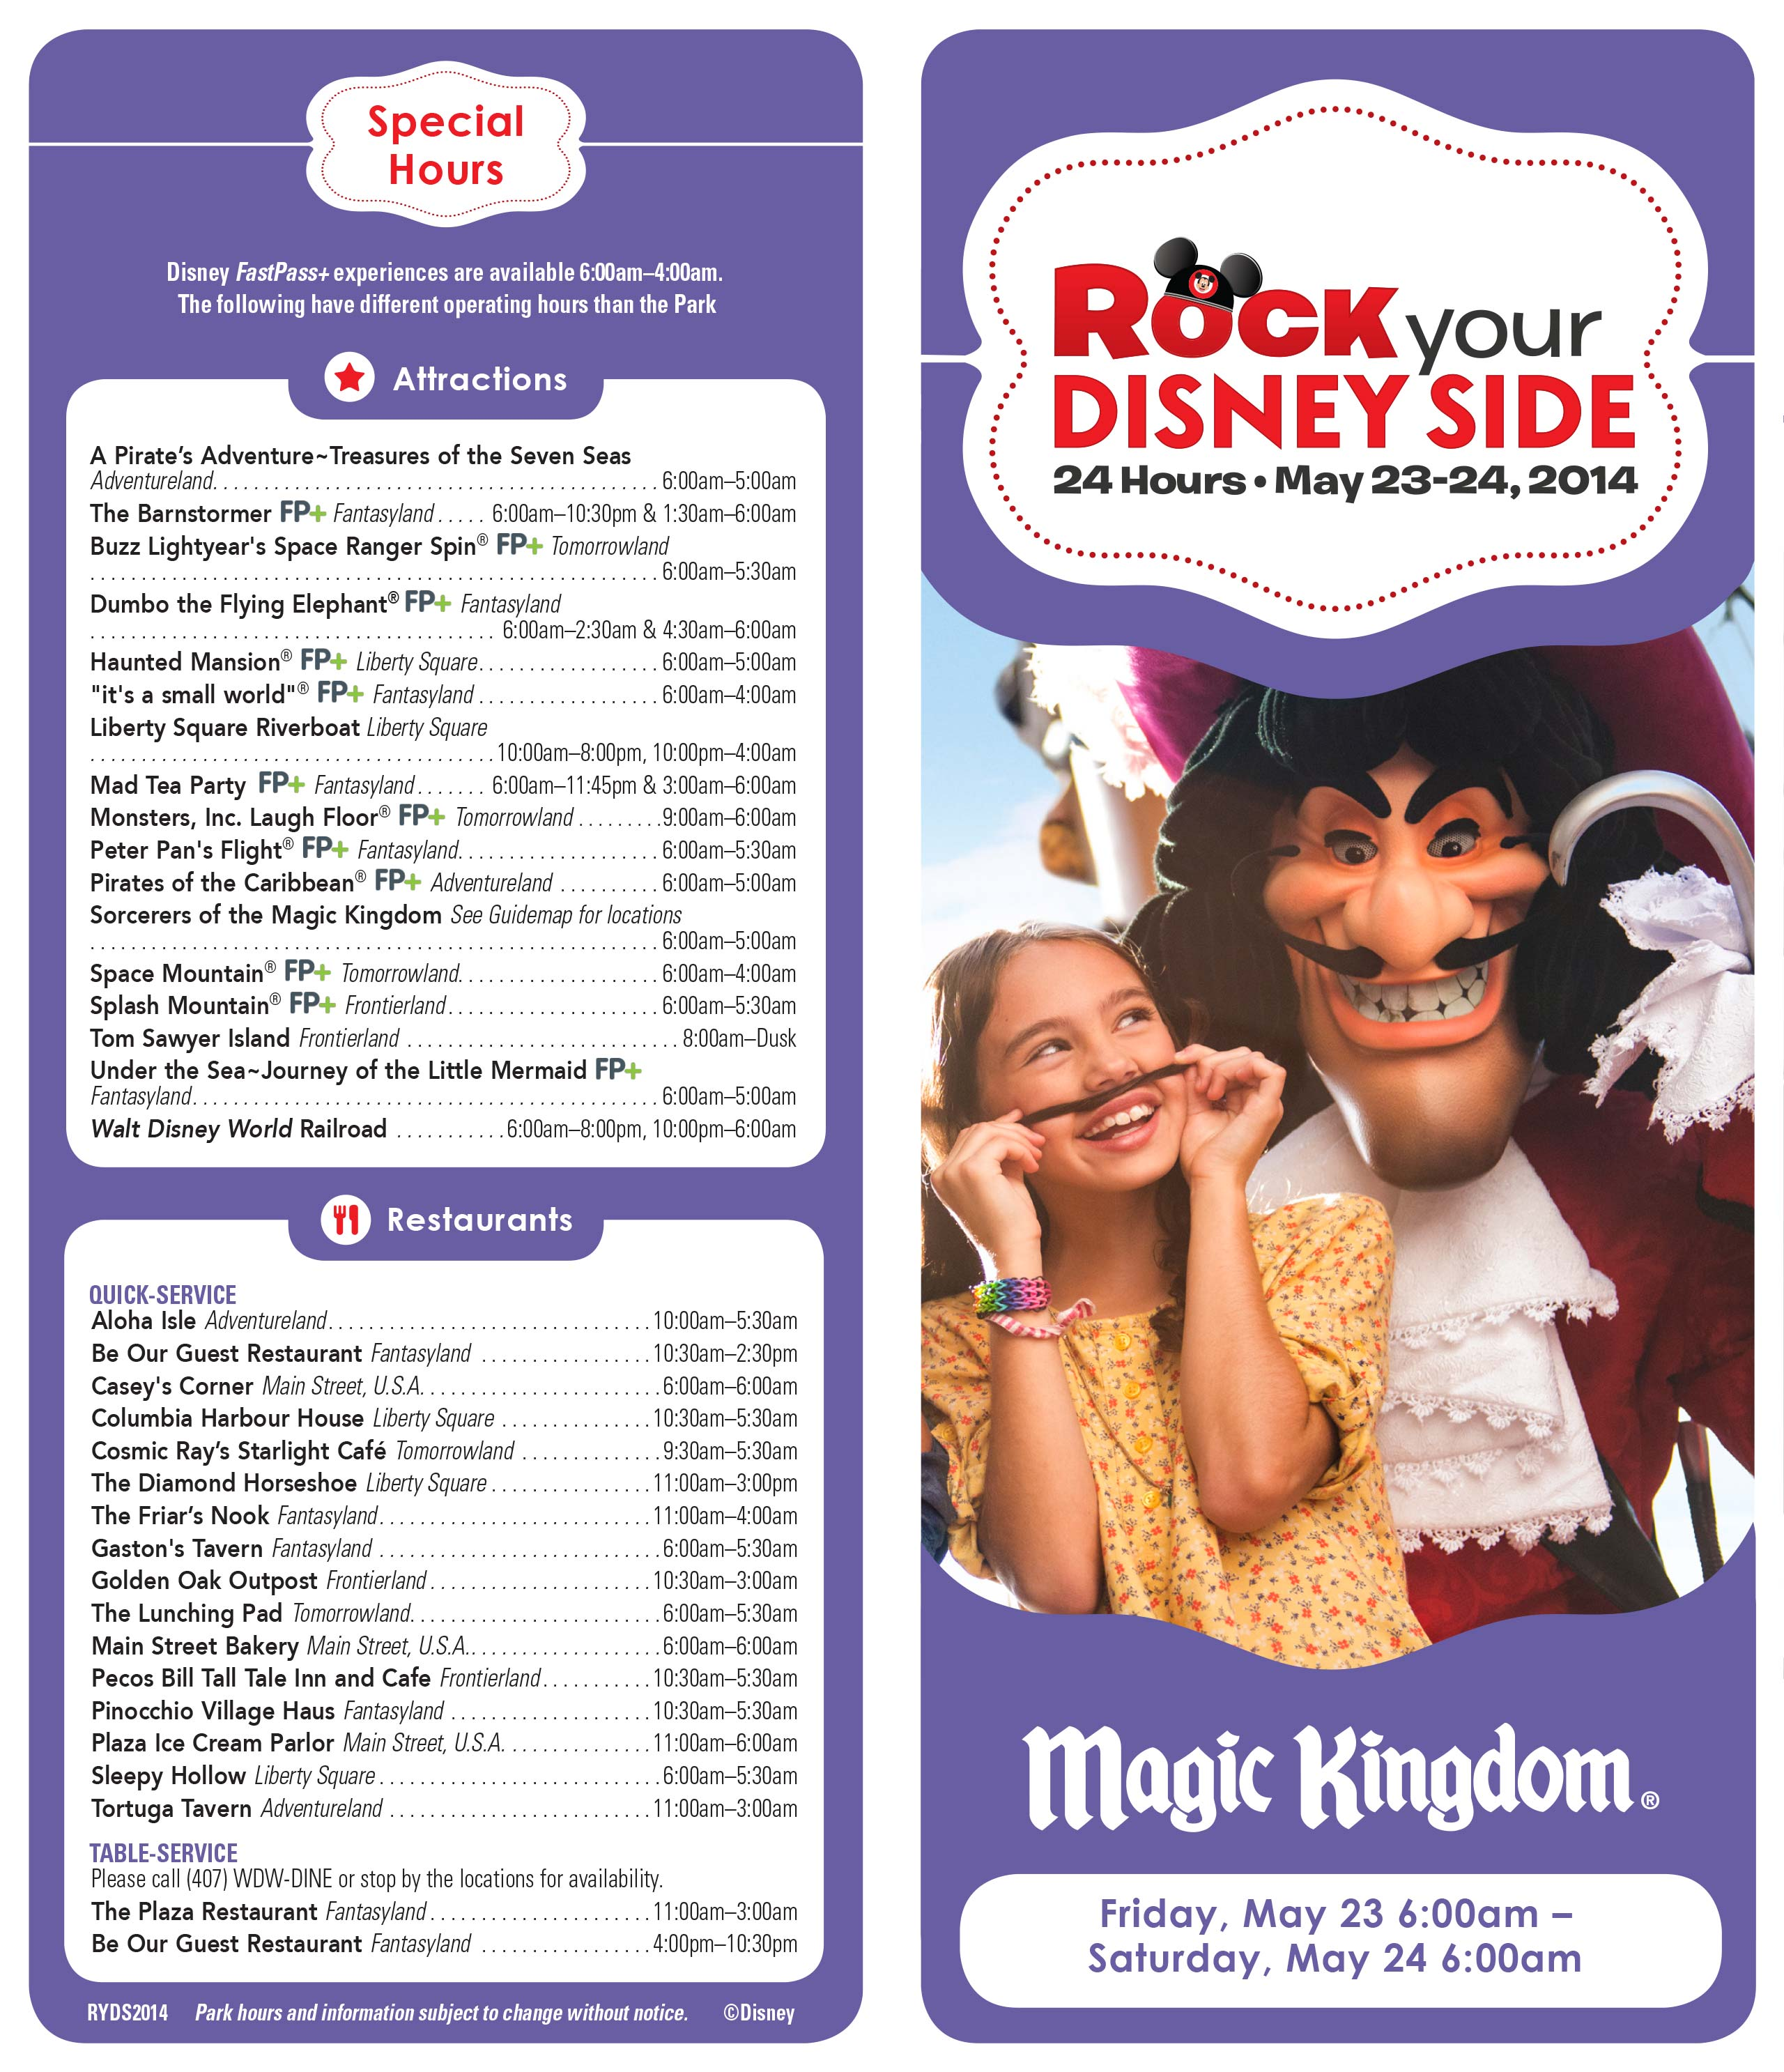 Rock Your Disney Side 24 hour event times guide - front